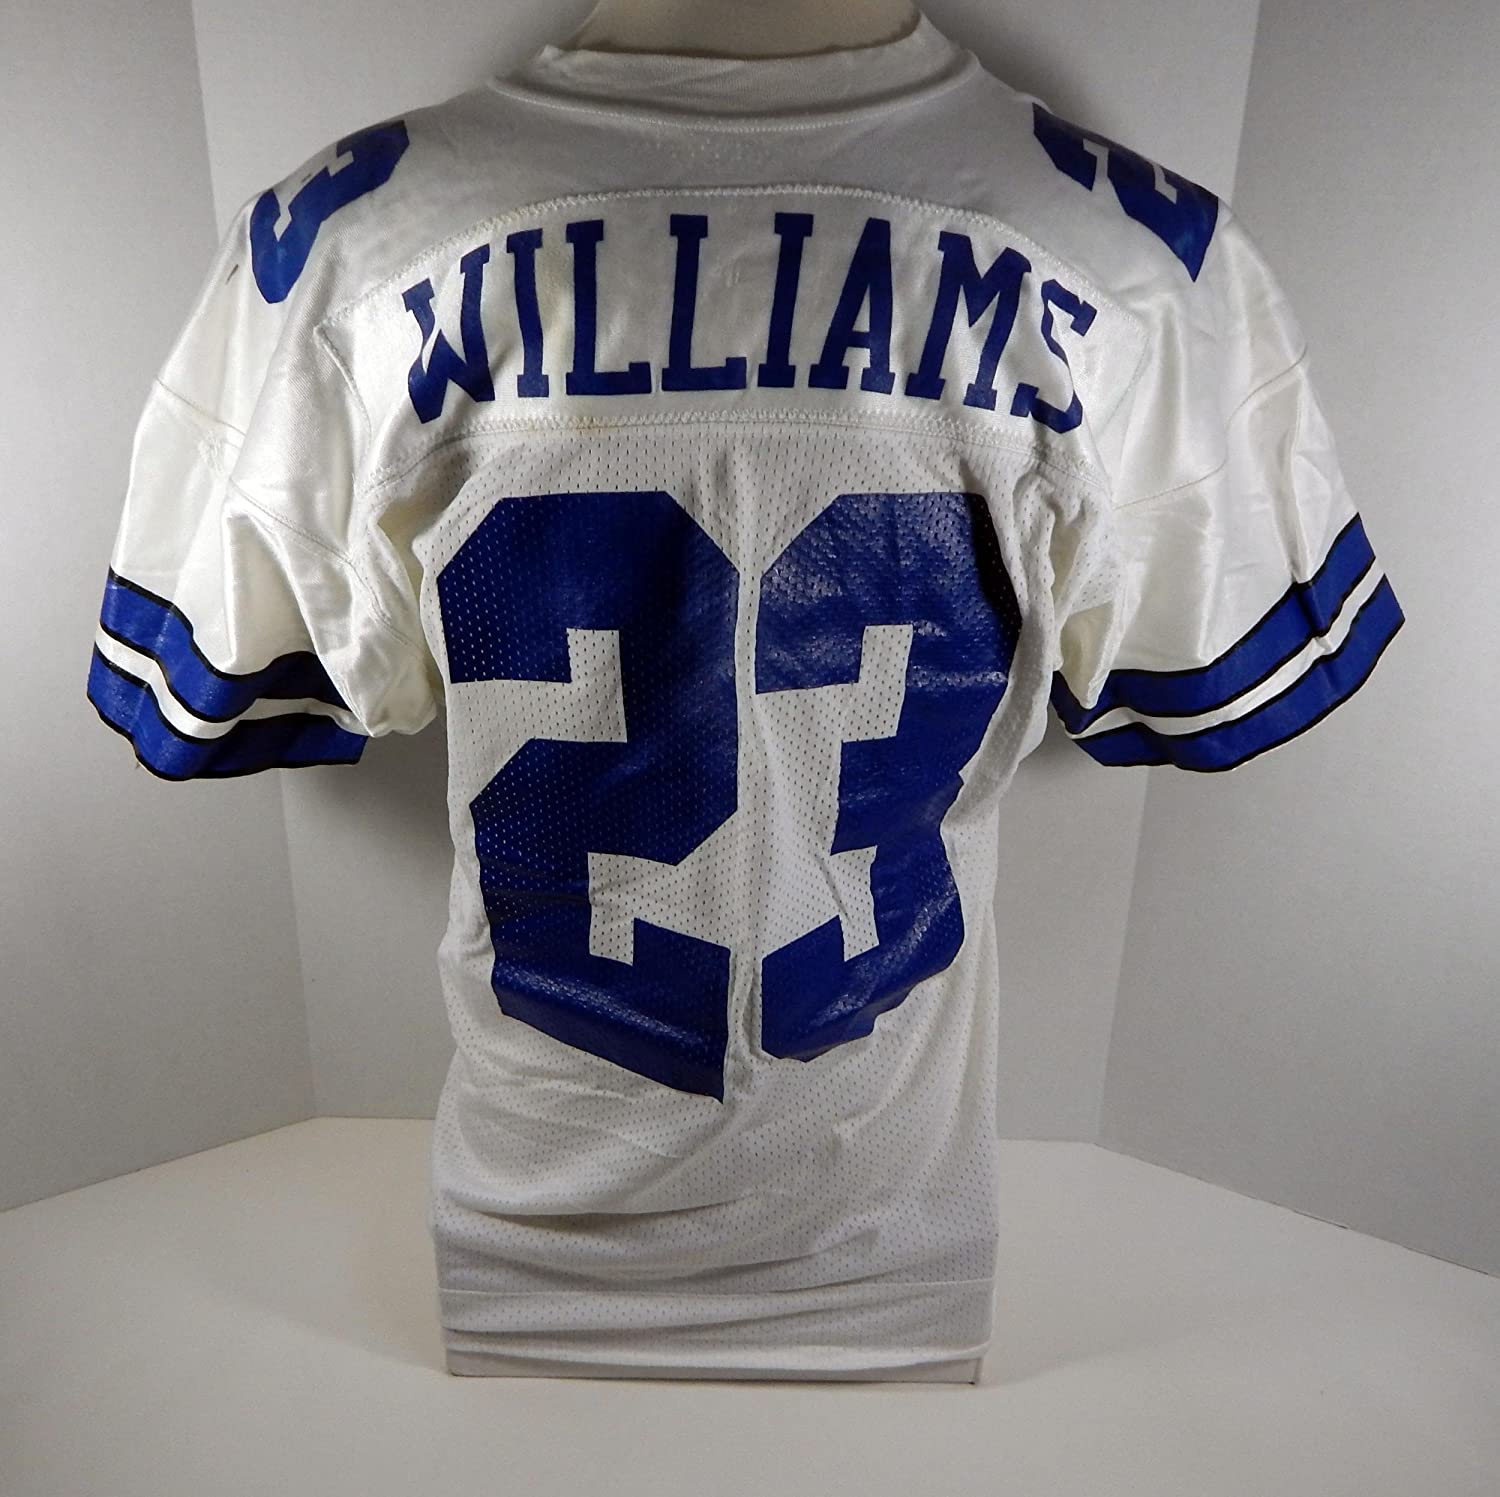 Dallas Cowboys Robert Williams #23 Game Issued White Jersey - Unsigned NFL Game Used Jerseys